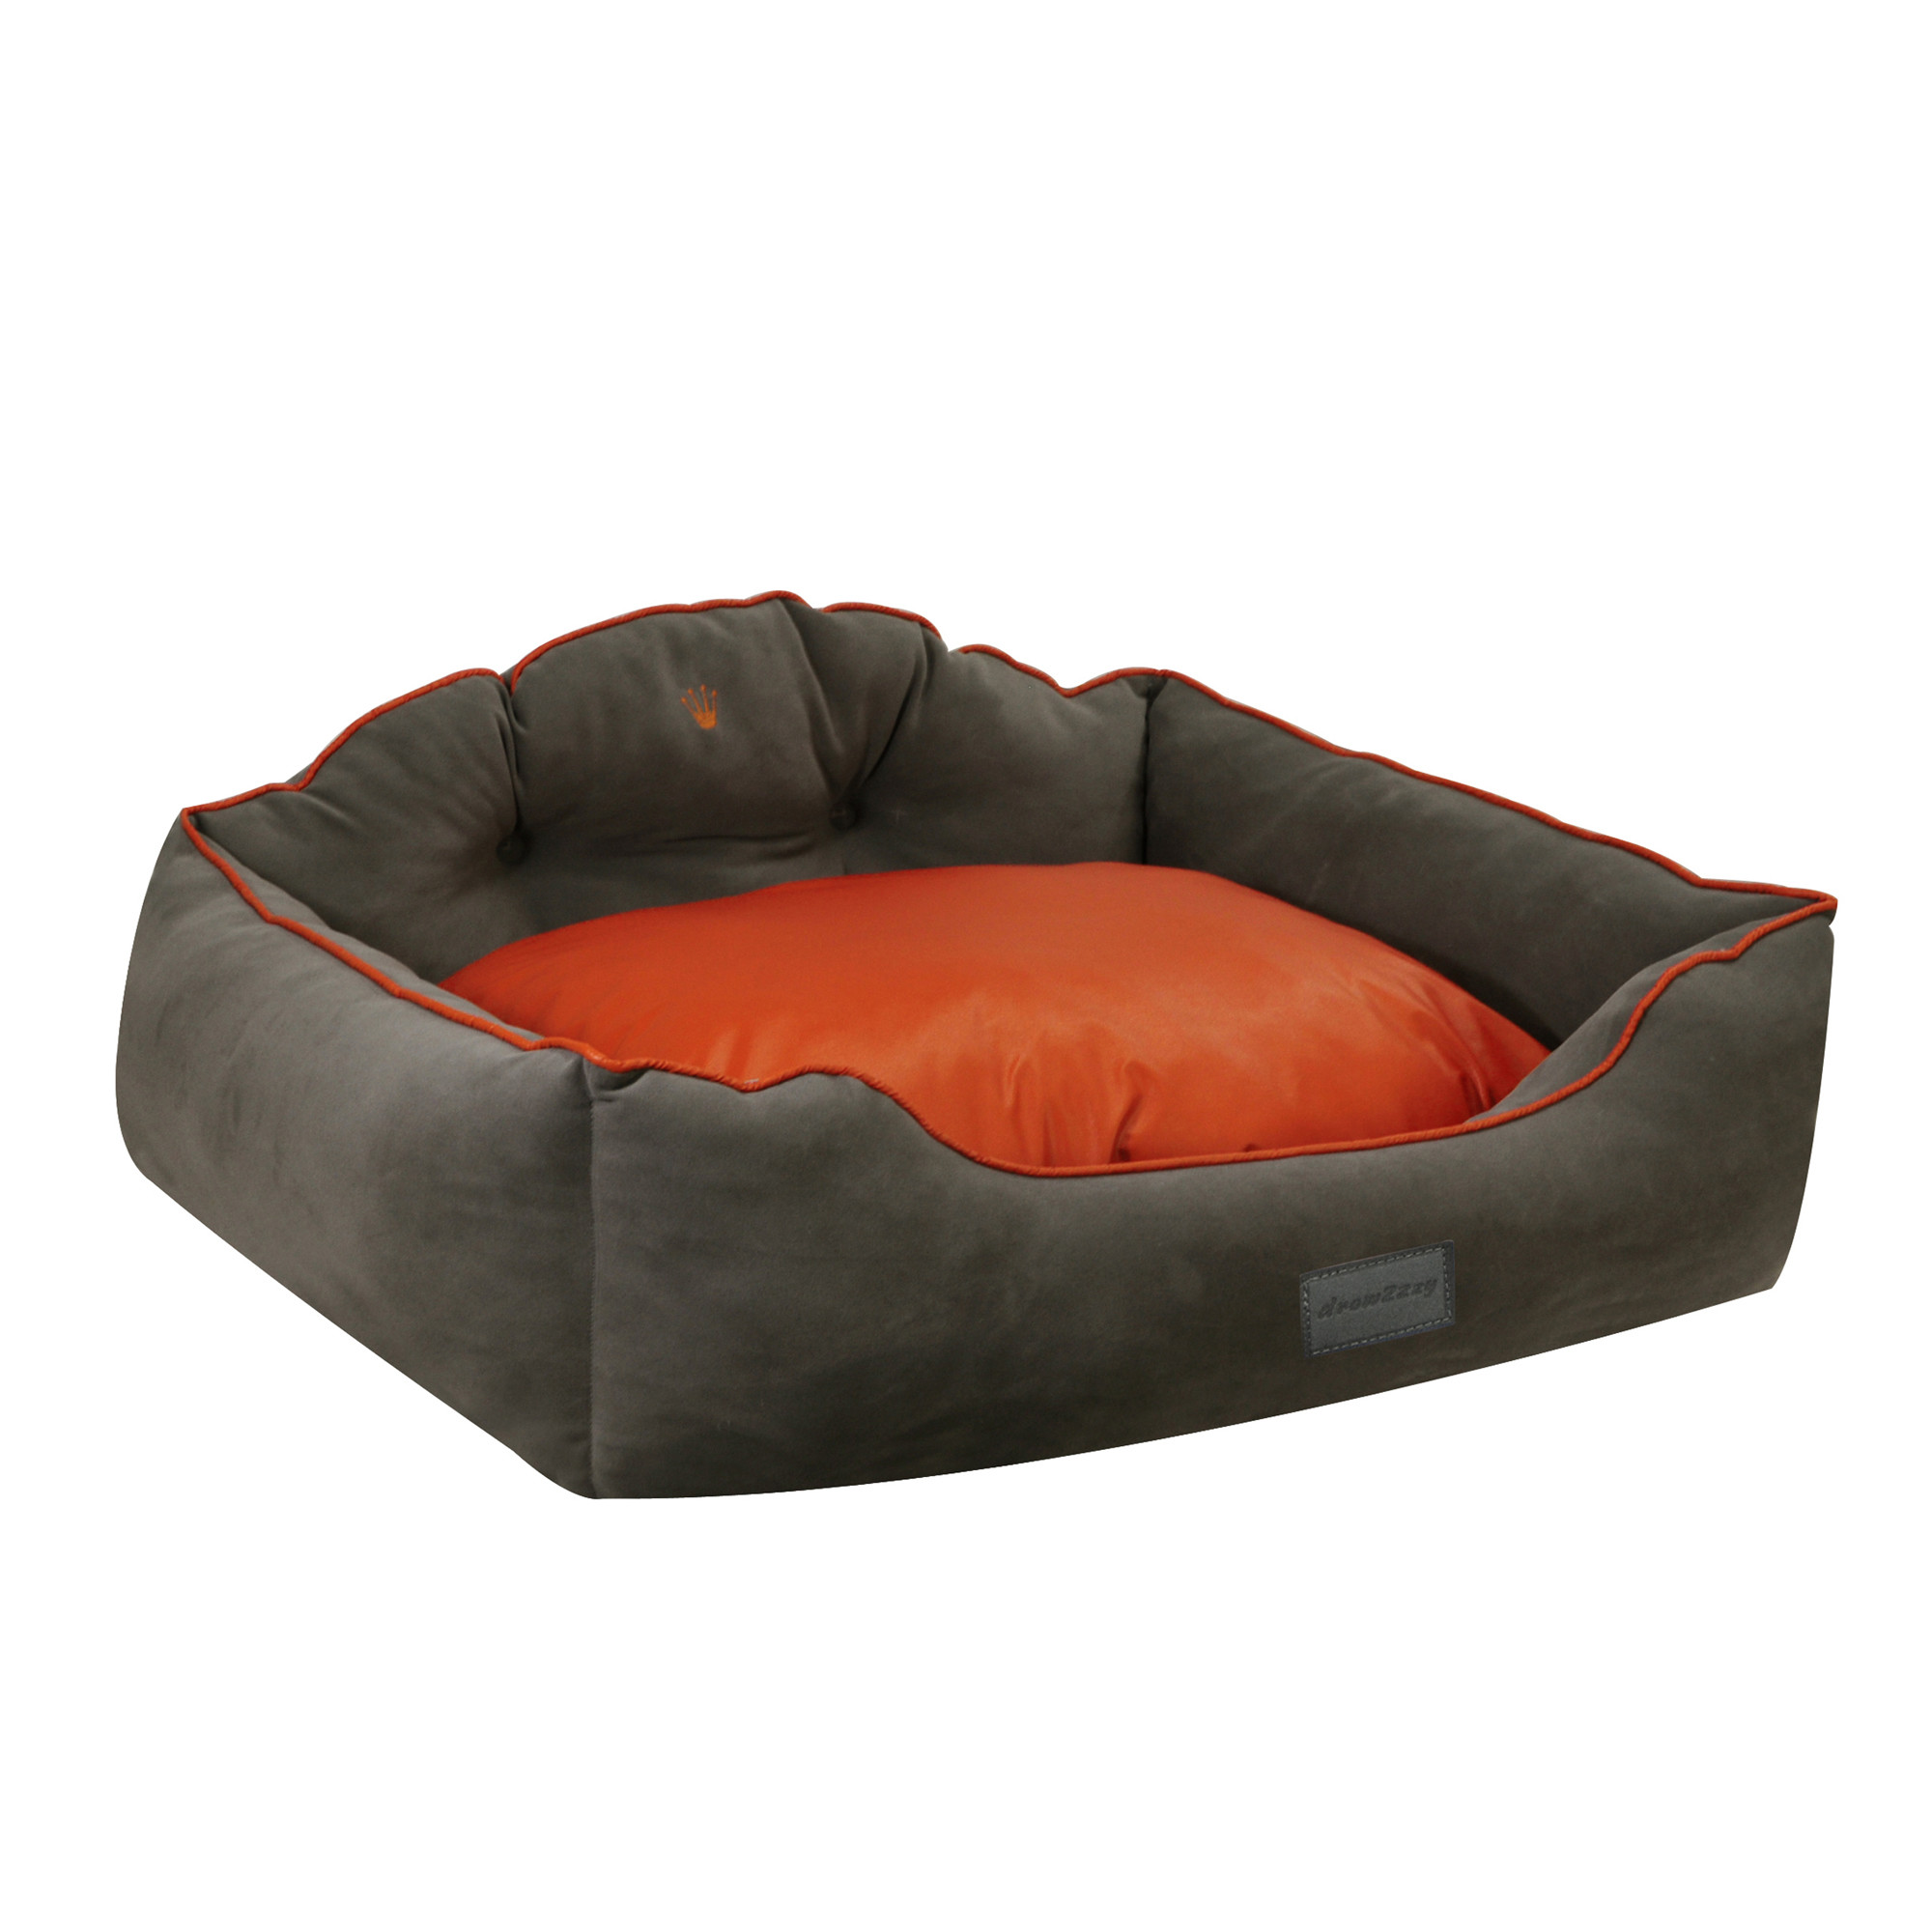 Non Chewable Dog Bed | Dog Bed Cot | Chew Proof Dog Bed